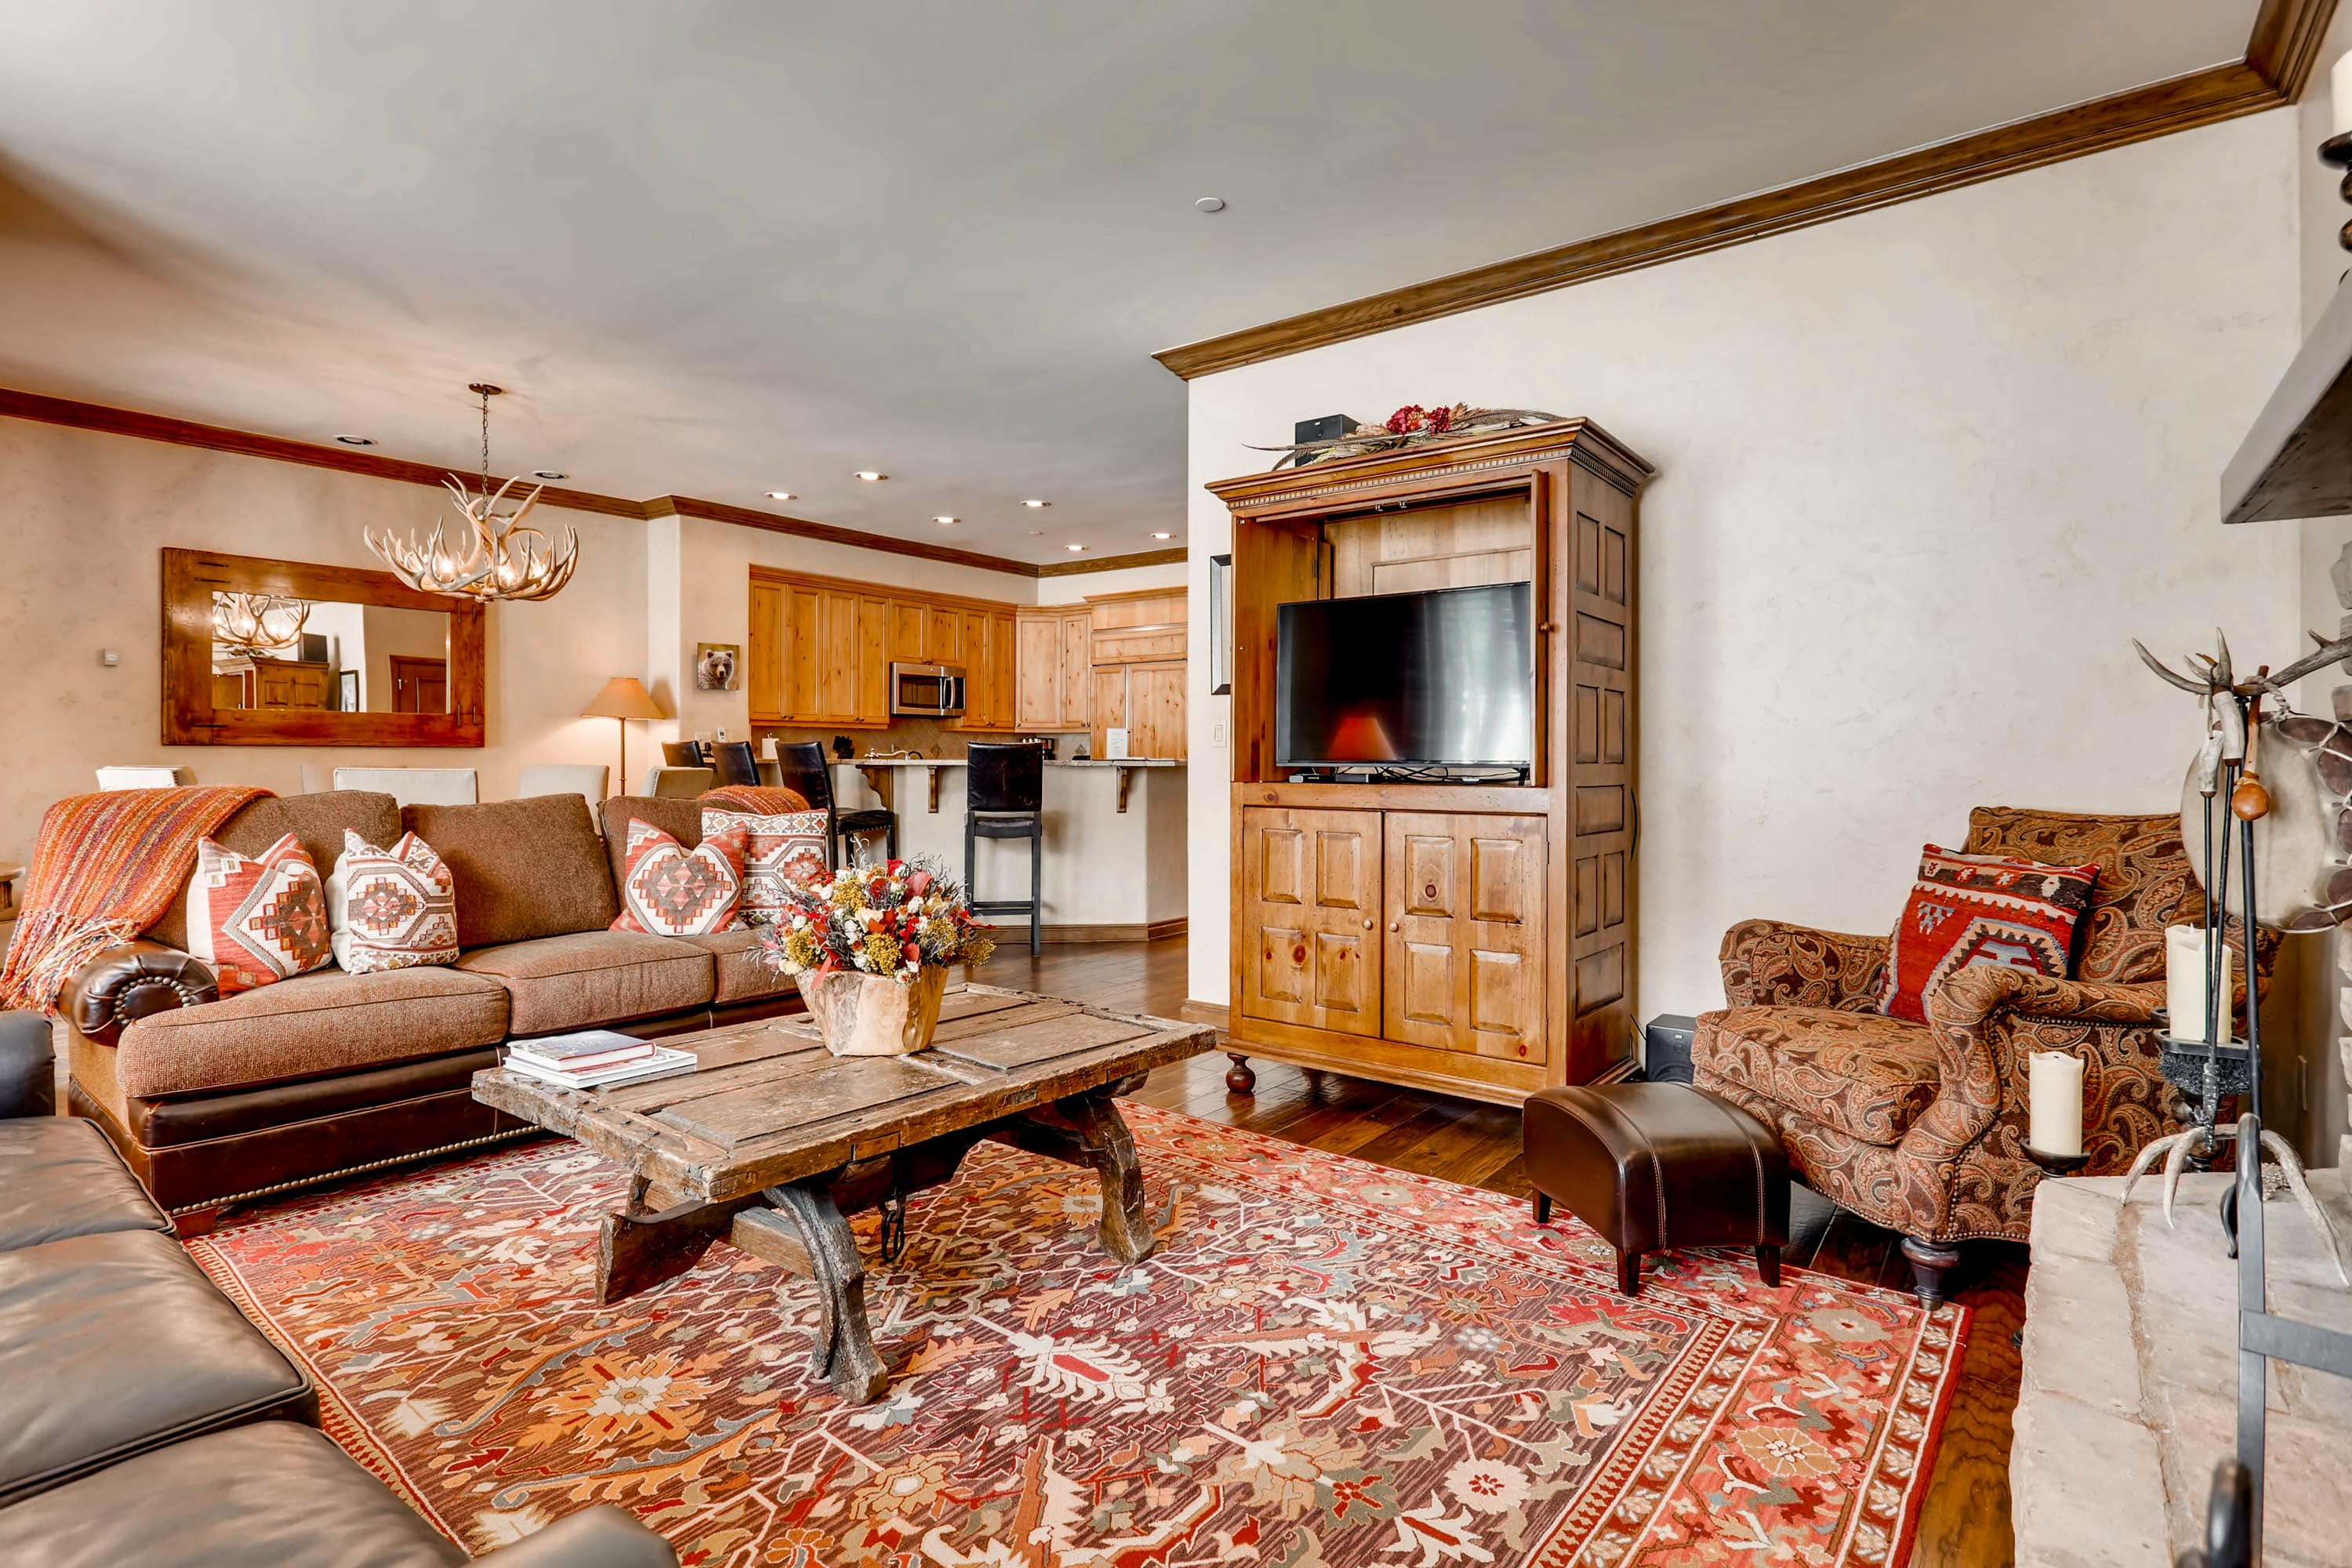 Property Image 2 - Immaculate Beaver Creek Condo with Ski Area Views